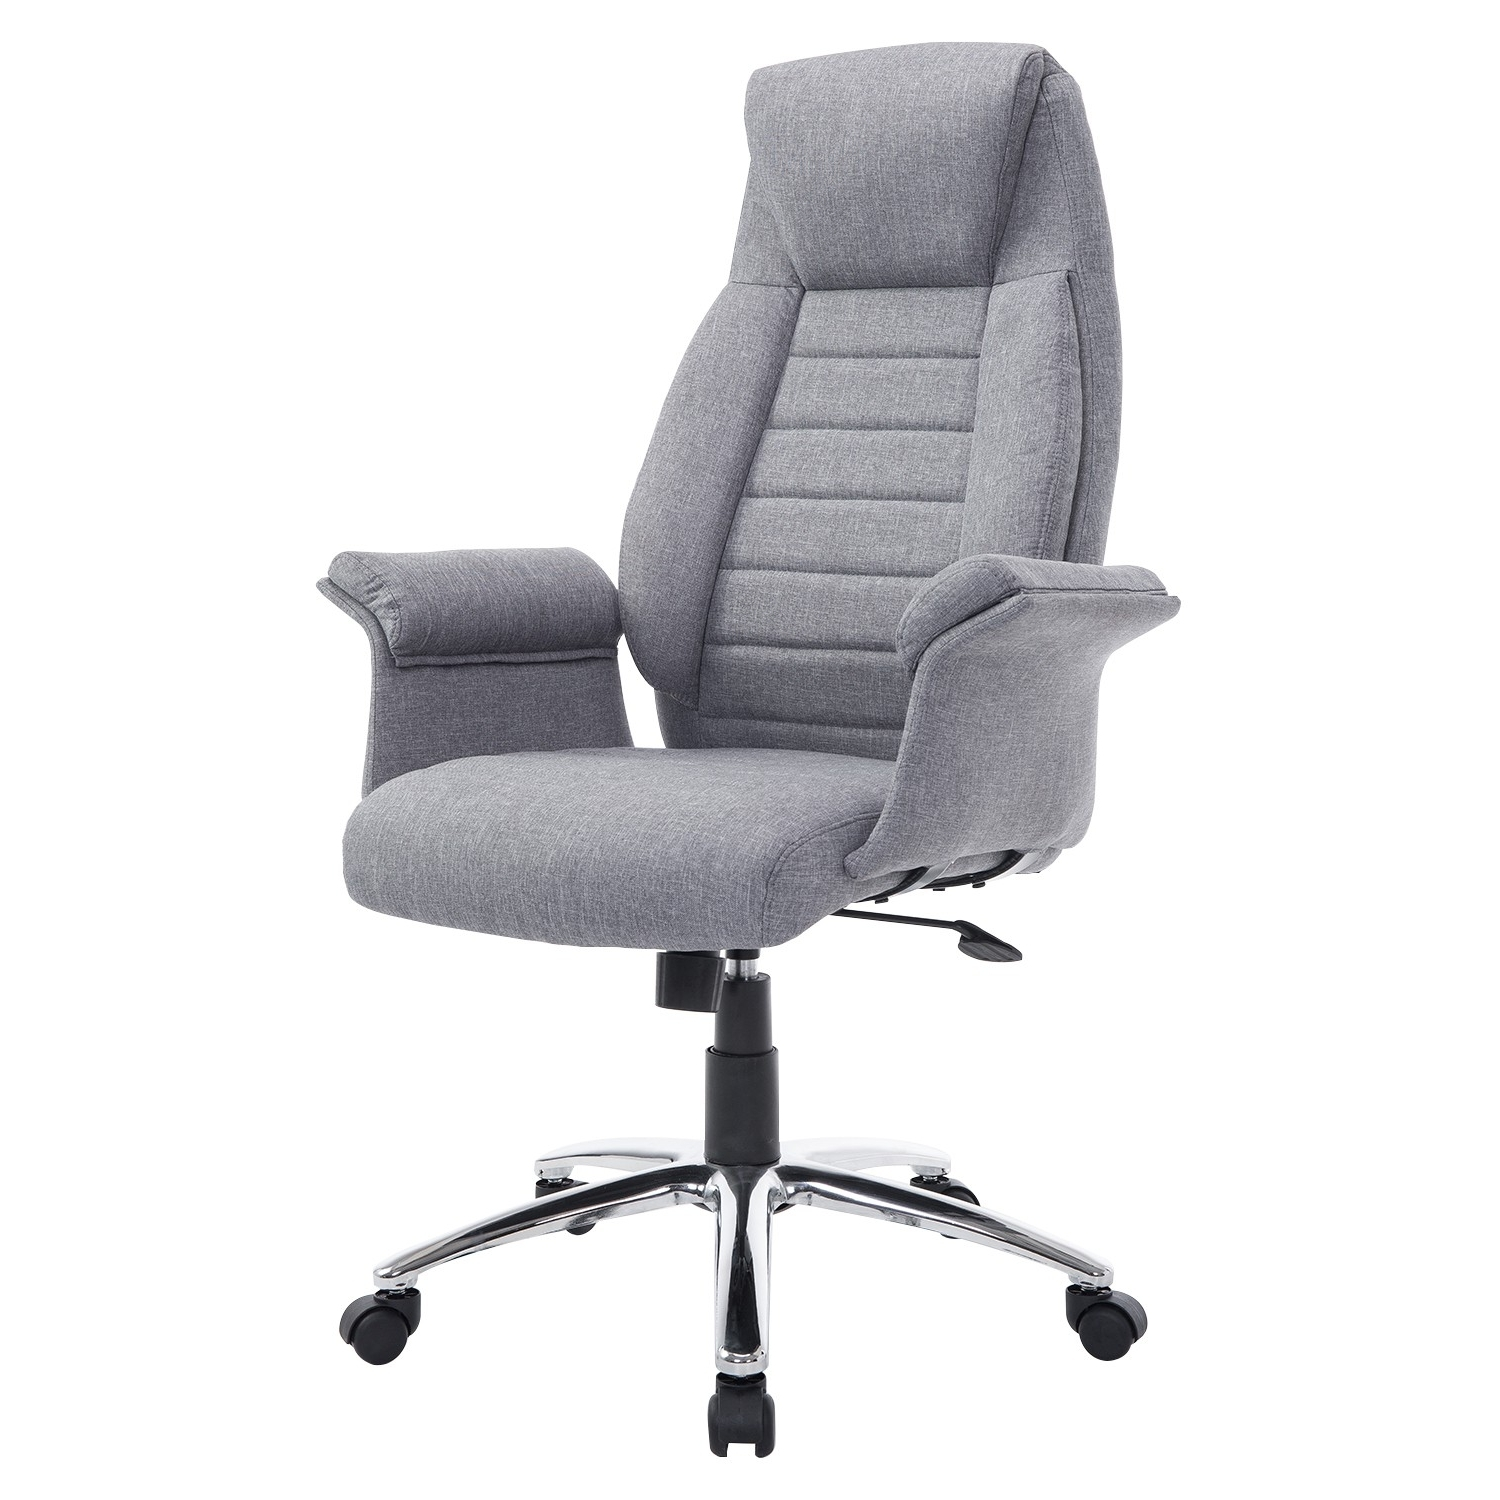 Trendy Fabric Executive Office Chairs Regarding Homcom Executive Heated Massage Office Chair – Cream (View 20 of 20)